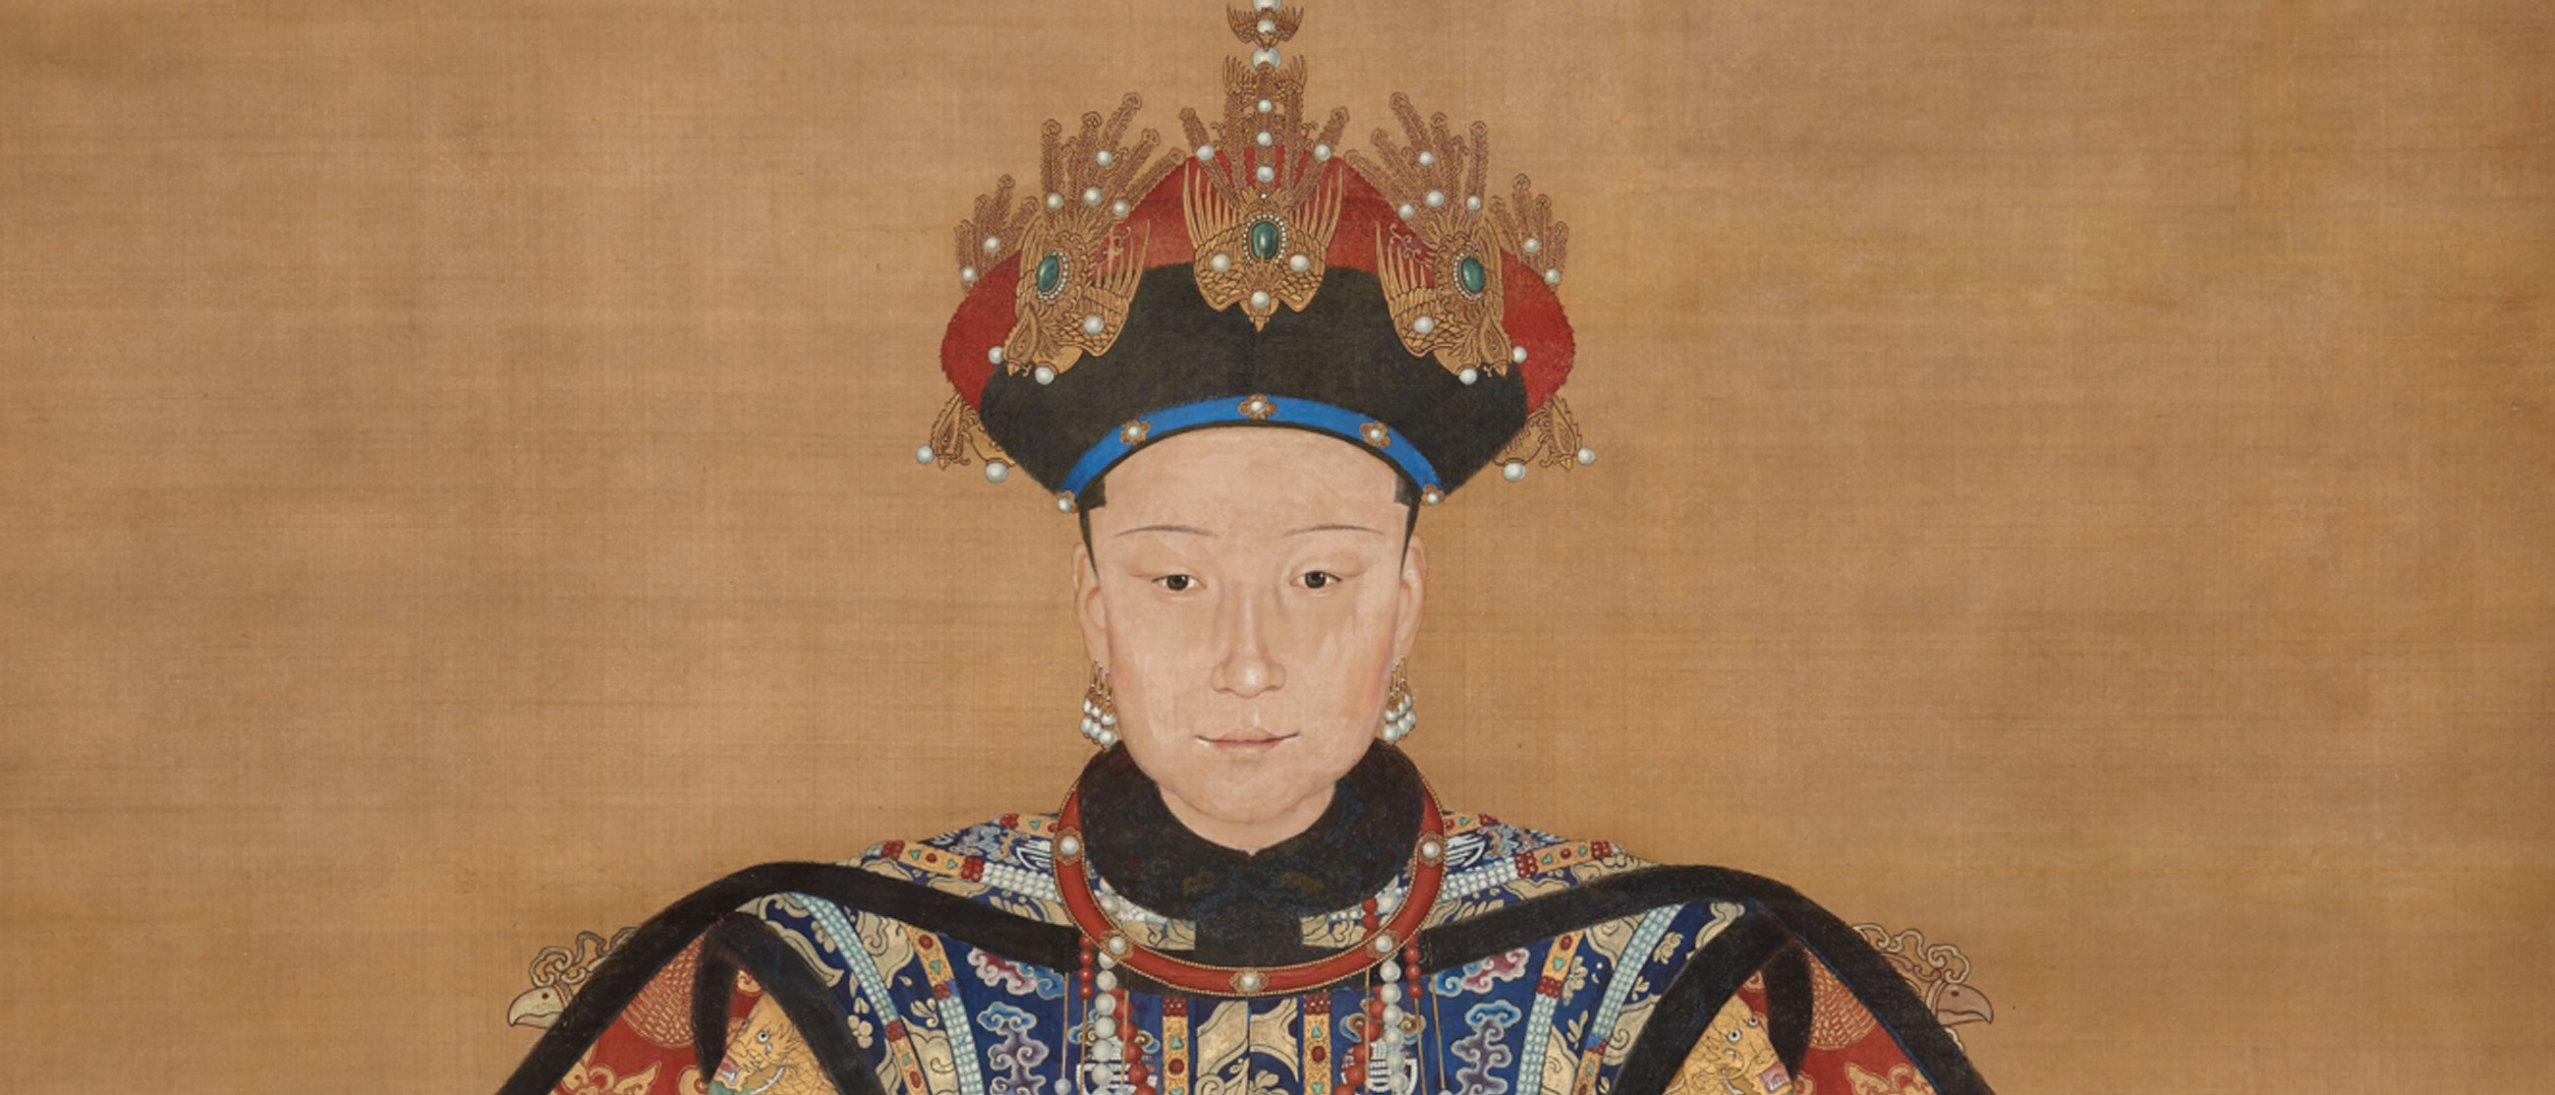 detail from a painting of empress xiaoxian